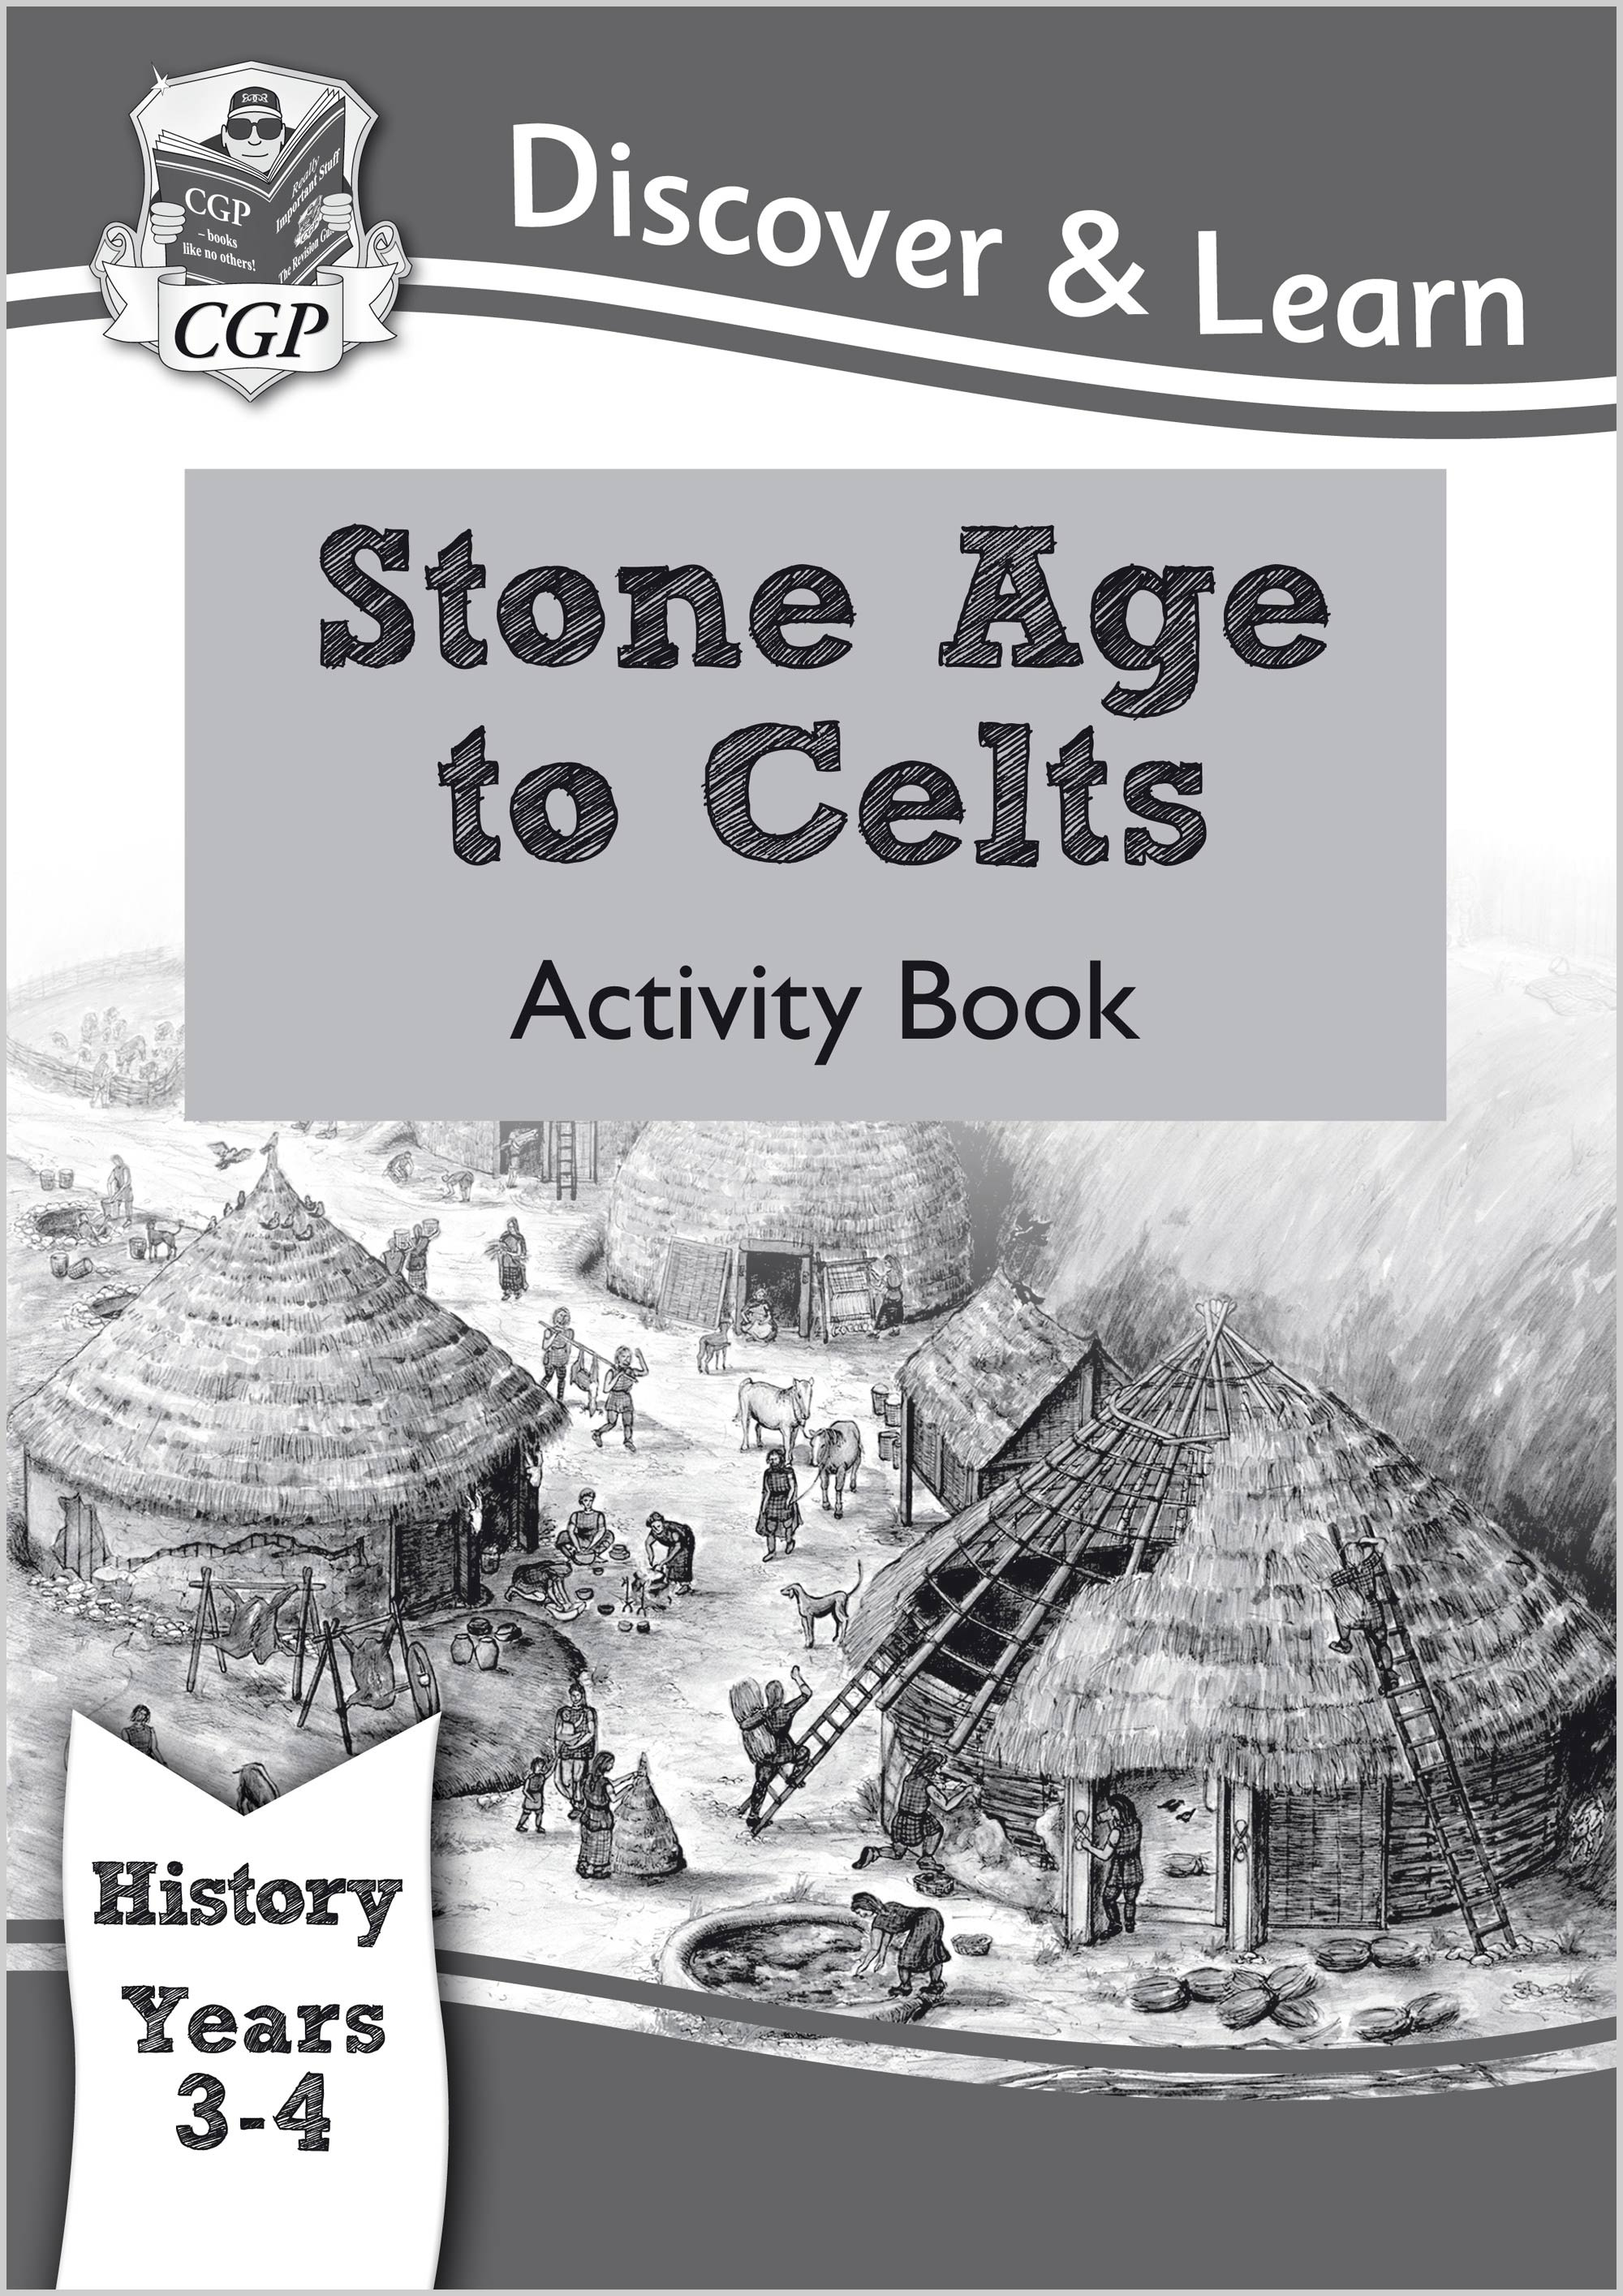 HCW22 - KS2 Discover & Learn: History - Stone Age to Celts Activity Book, Year 3 & 4